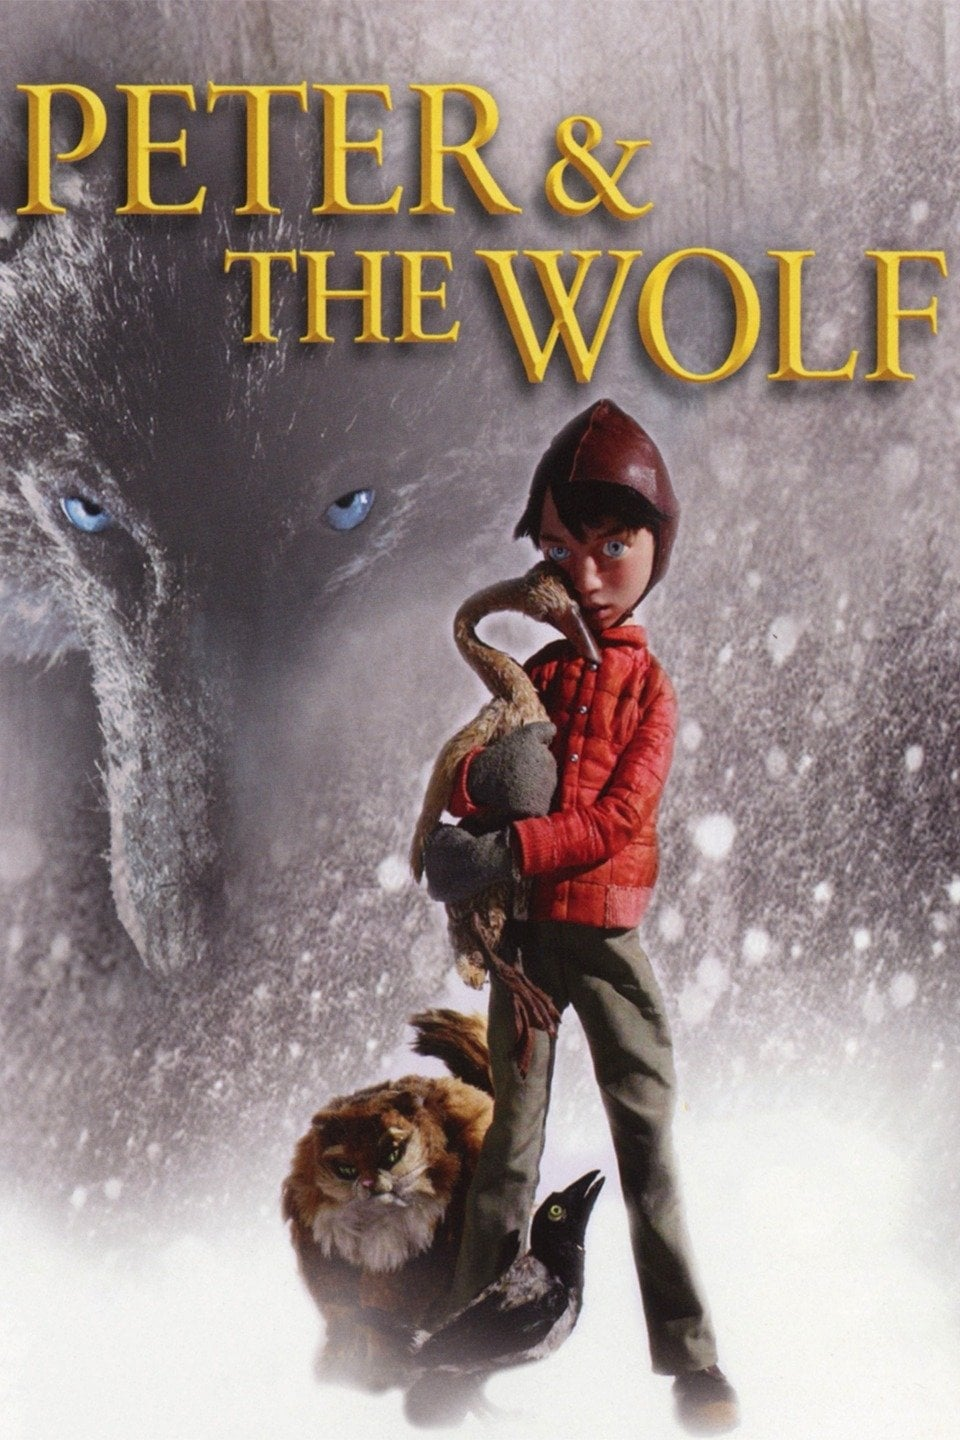 Peter & the Wolf on FREECABLE TV